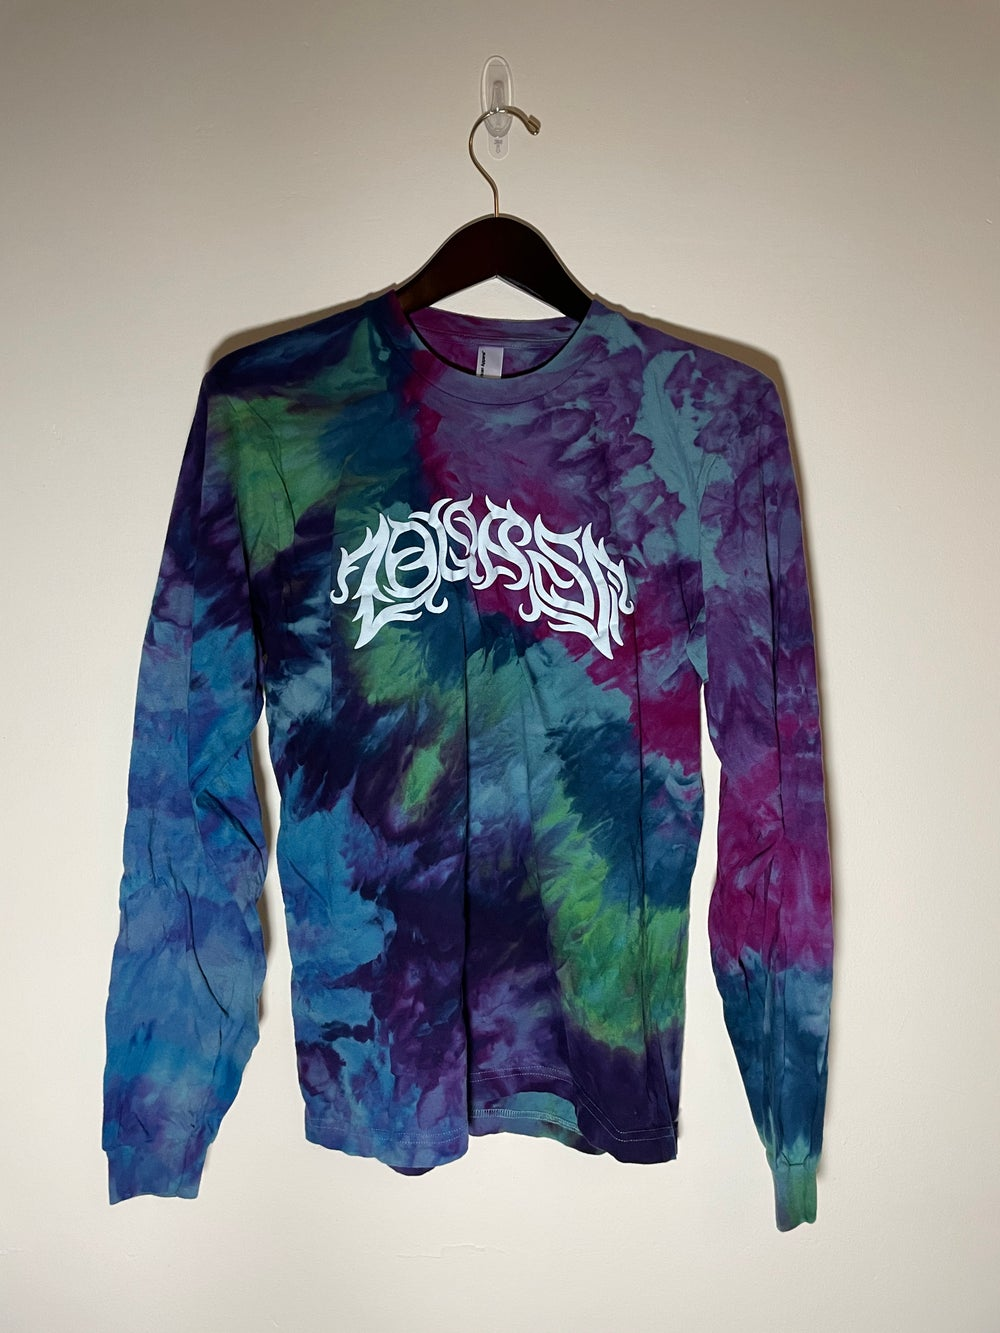 Long Sleeve Tie Dye Shirt #5 - Medium